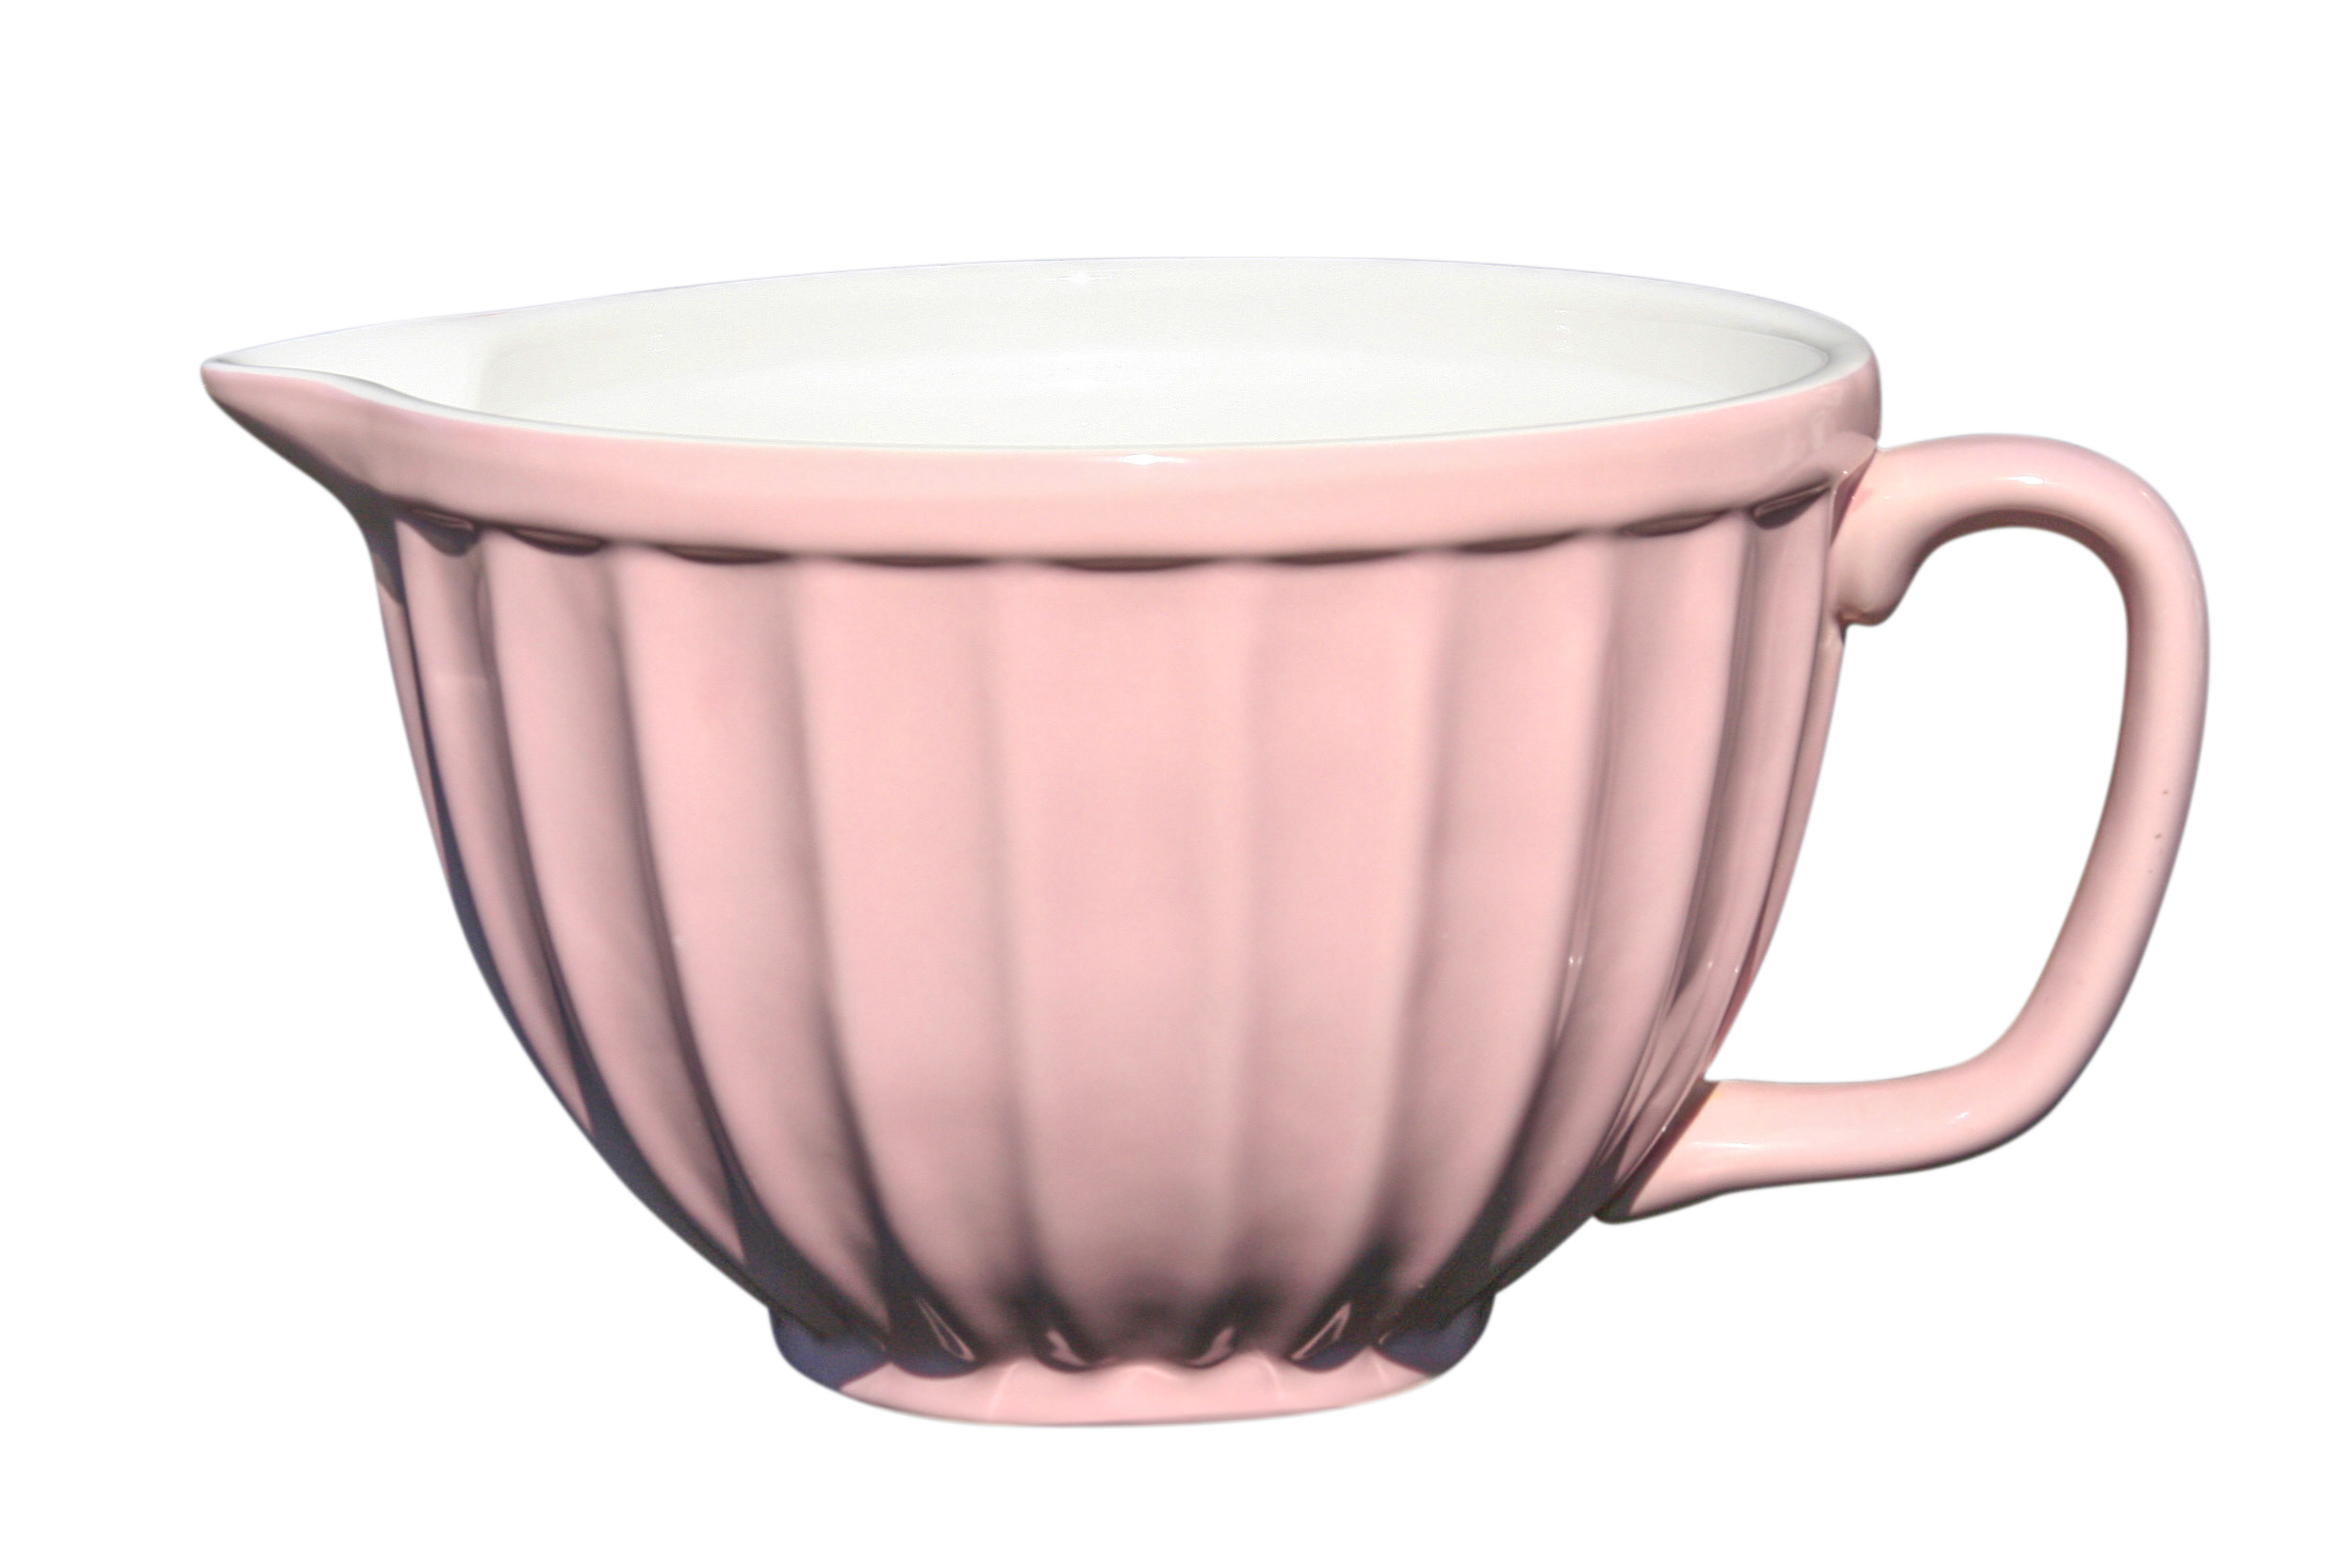 Teacup Mixing Bowl Large Pink